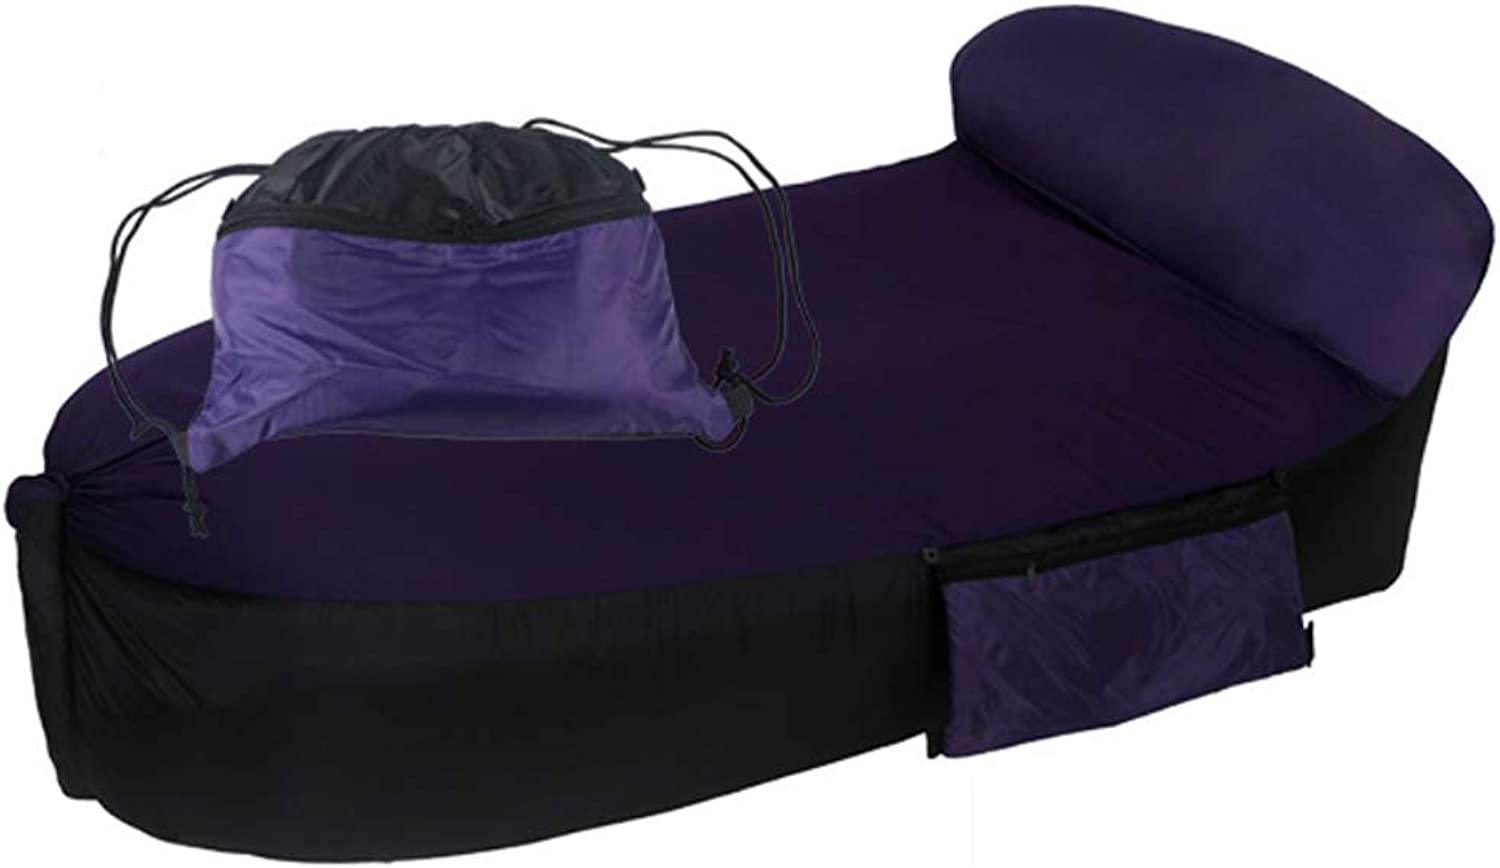 Summer Swimming Beach Inflatable Recliner Lazy Portable Waterproof Adult Floating Bed Sleeping Bag Hiking Pool (color   PURPLE)